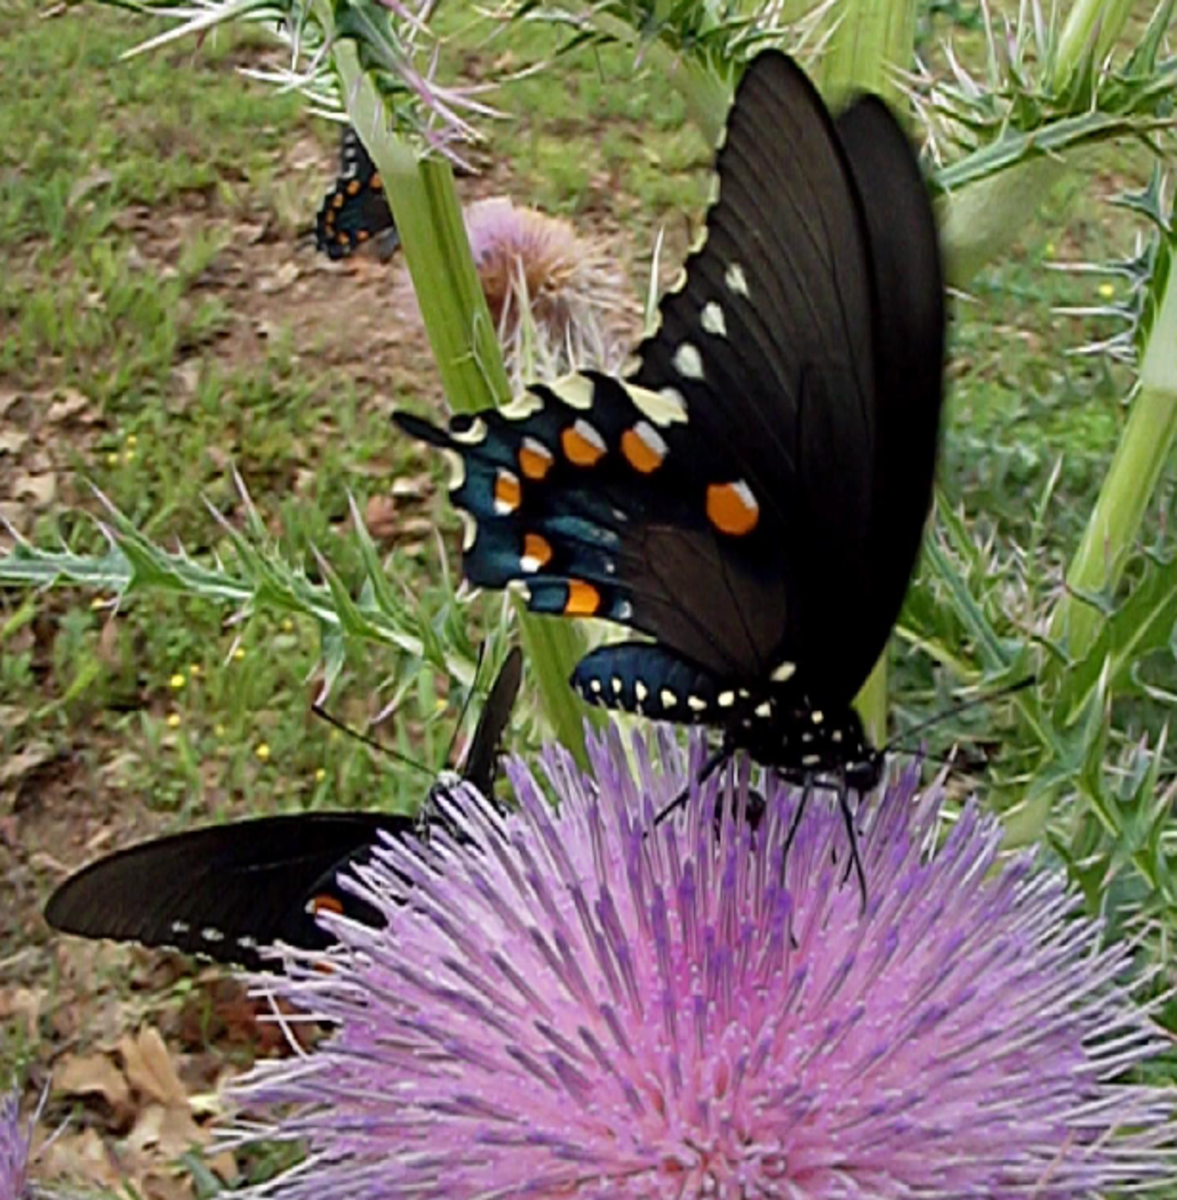 Image of Black Butterfly on a Thistle Flower